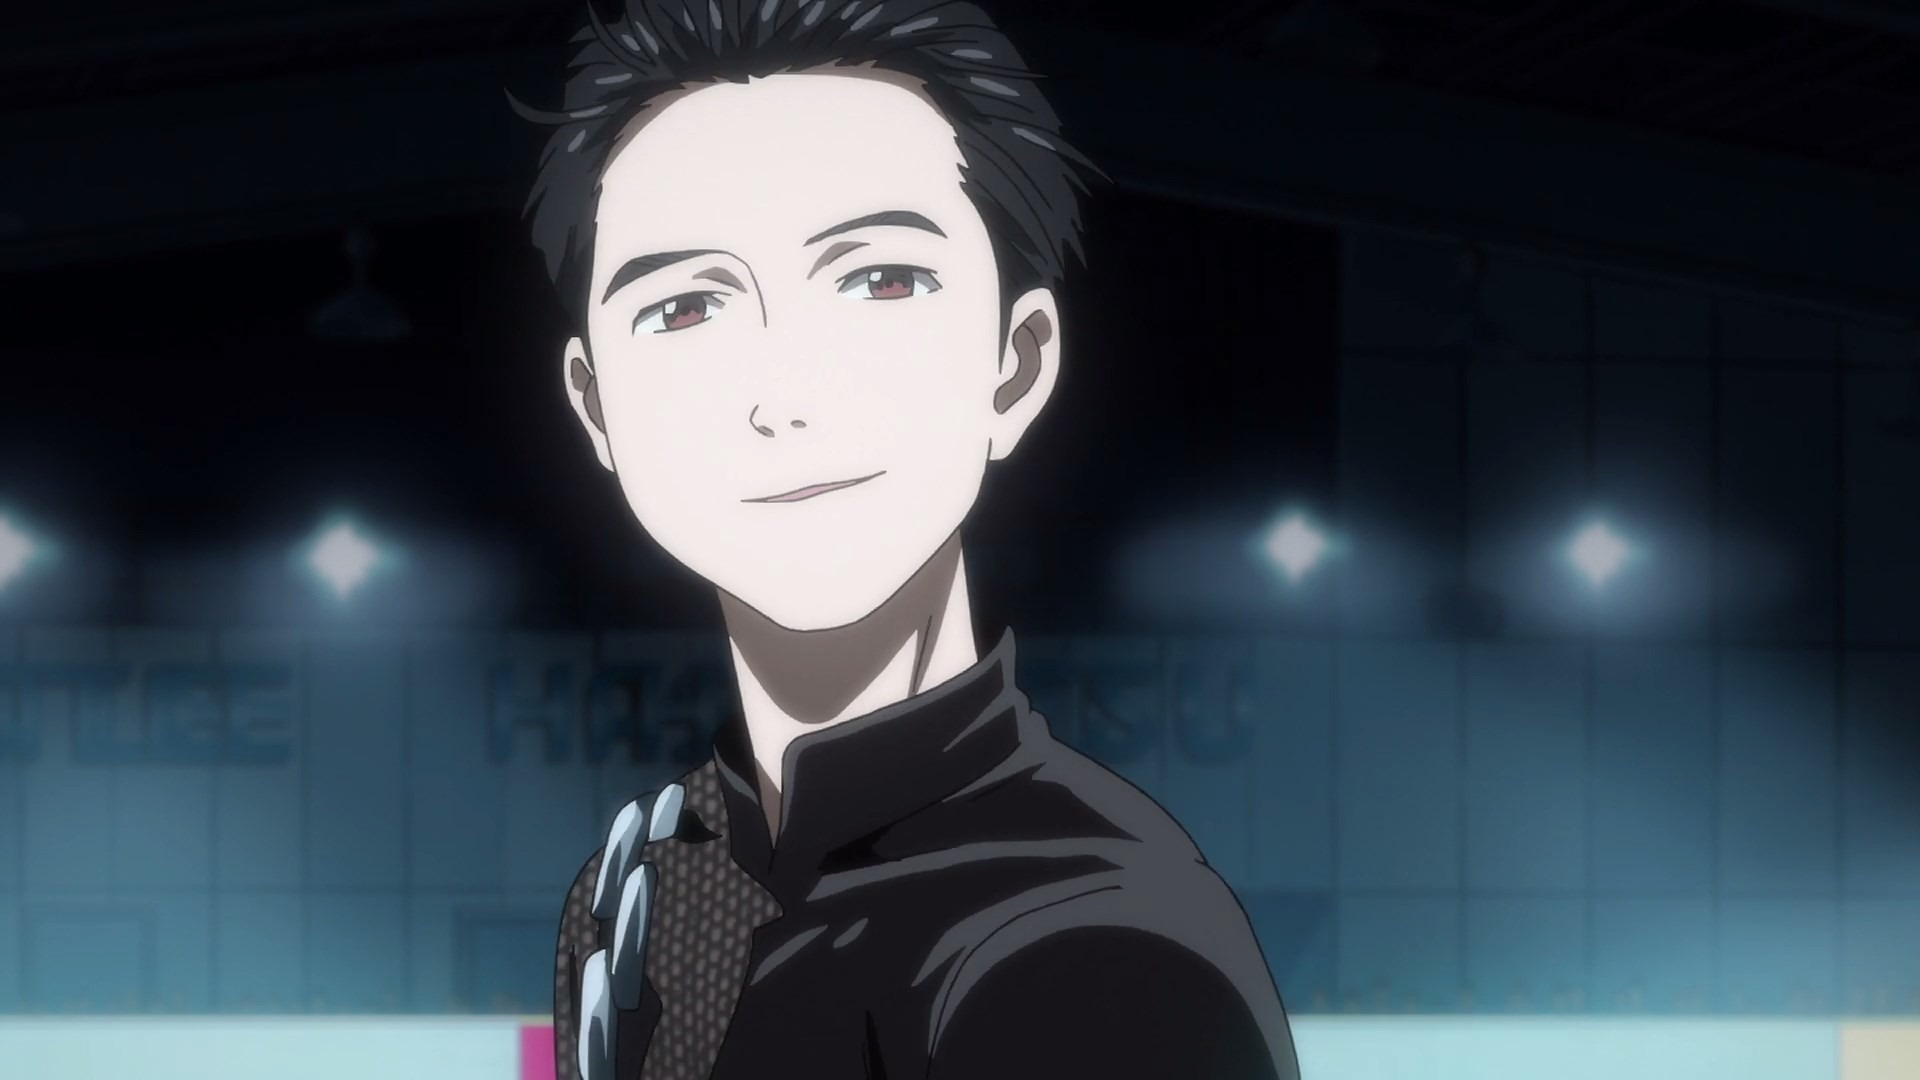 Yuri On Ice Background Download Free High Resolution